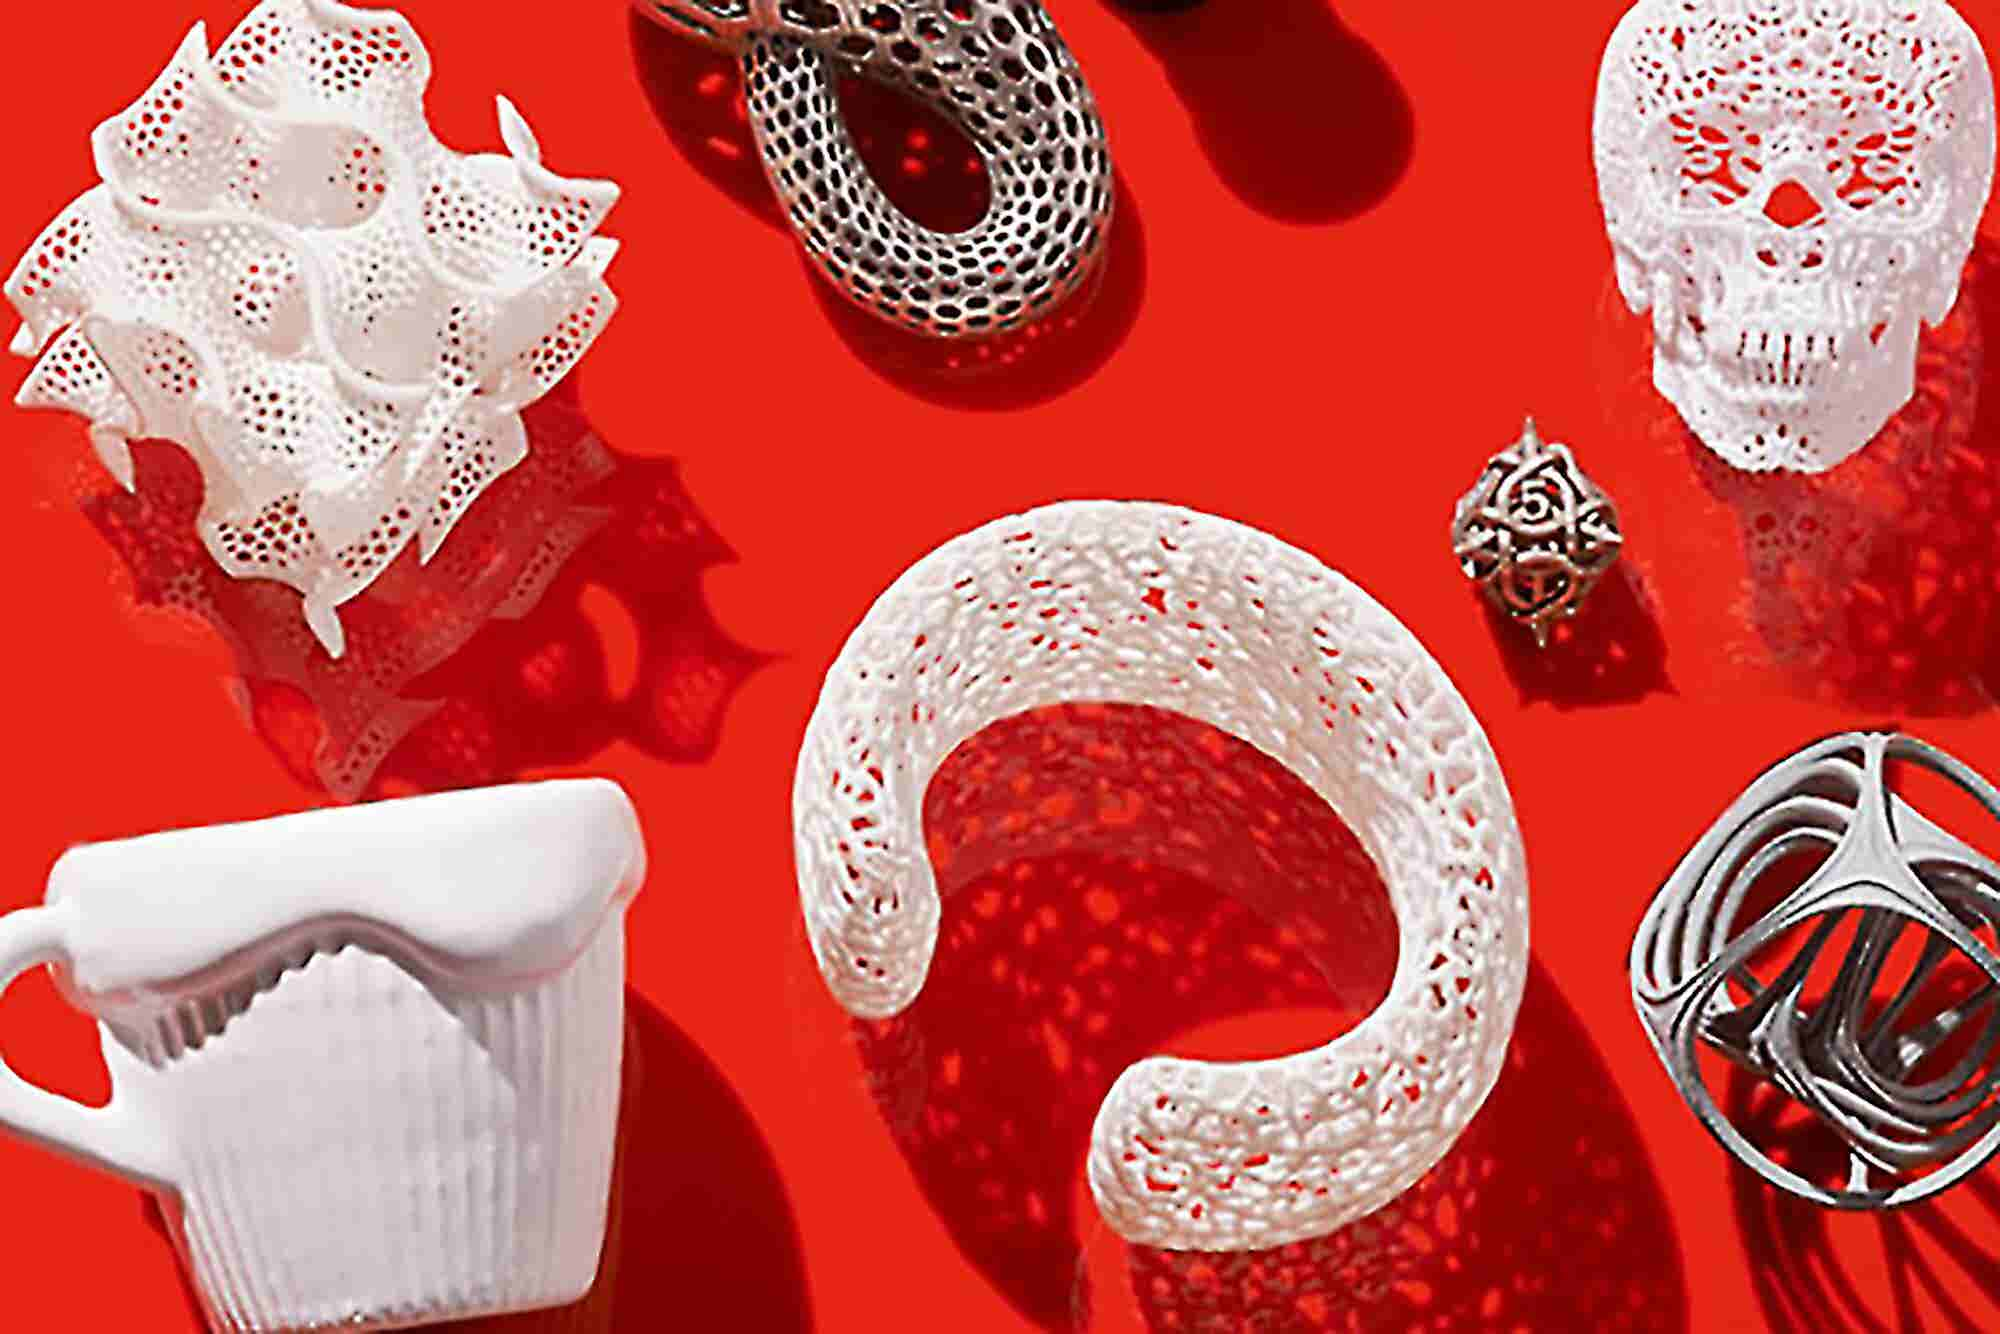 What 3-D Printing Could Mean for Small Businesses